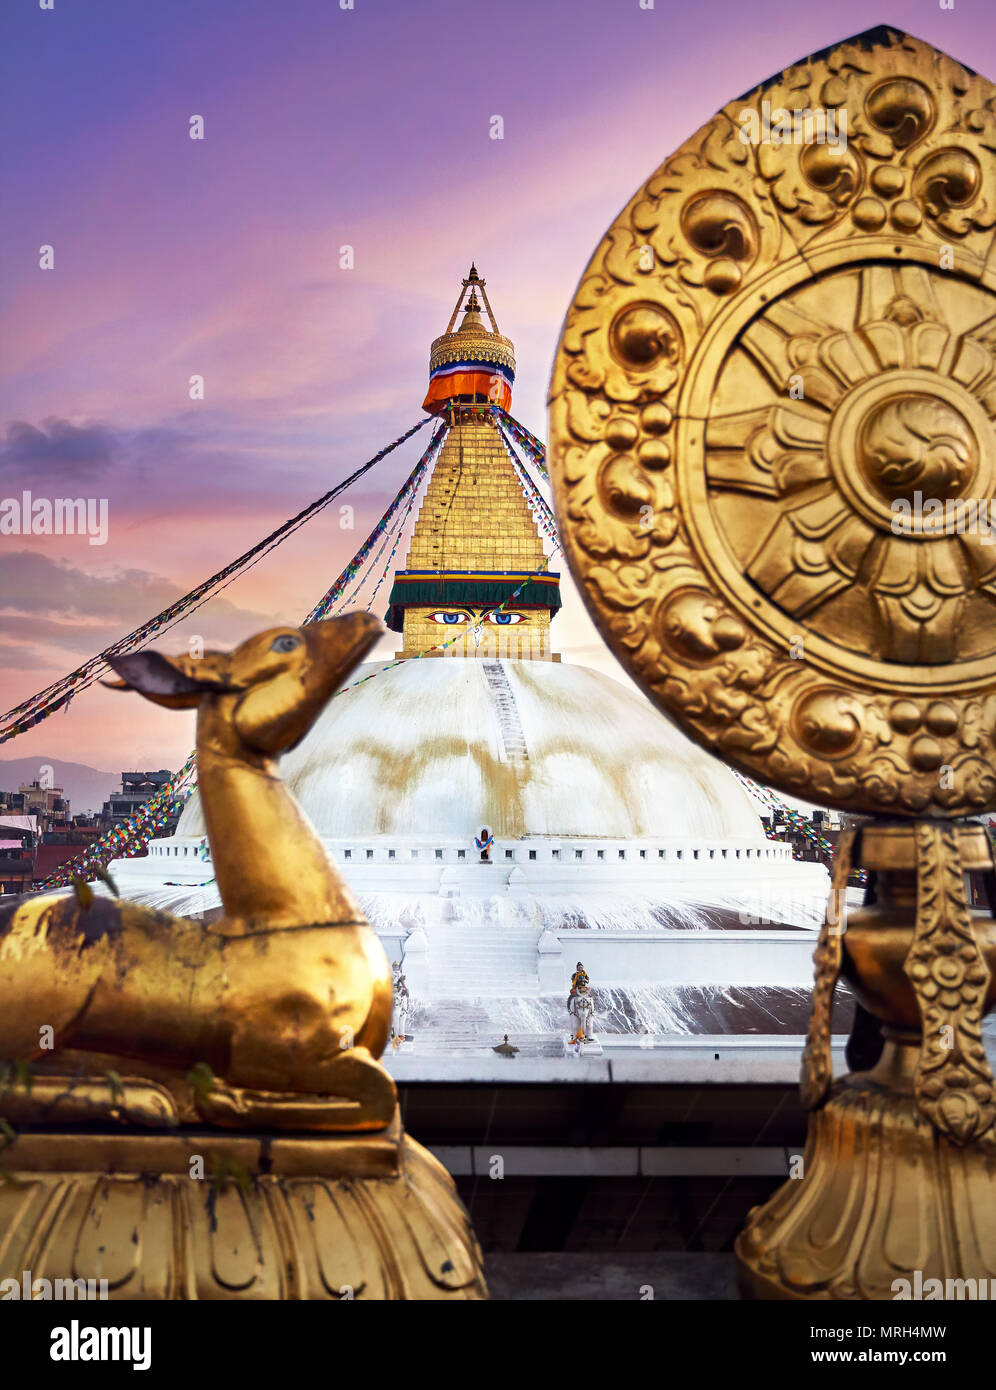 View of Bodnath Buddhist Stupa and Golden deers with leaf at the roof of monastery in Kathmandu - Stock Image